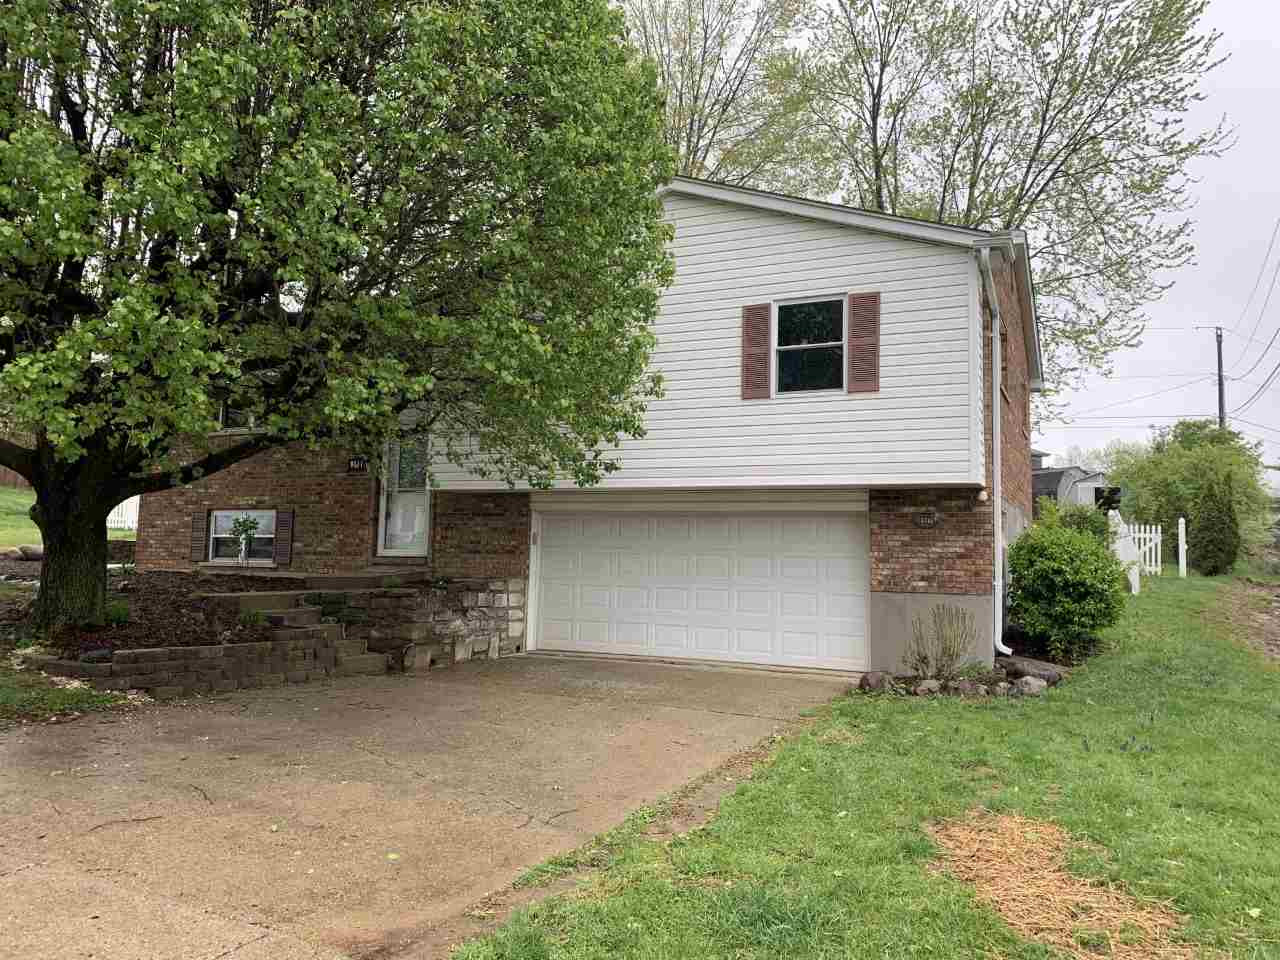 Photo 2 for 8581 Winthrop Cir Florence, KY 41042